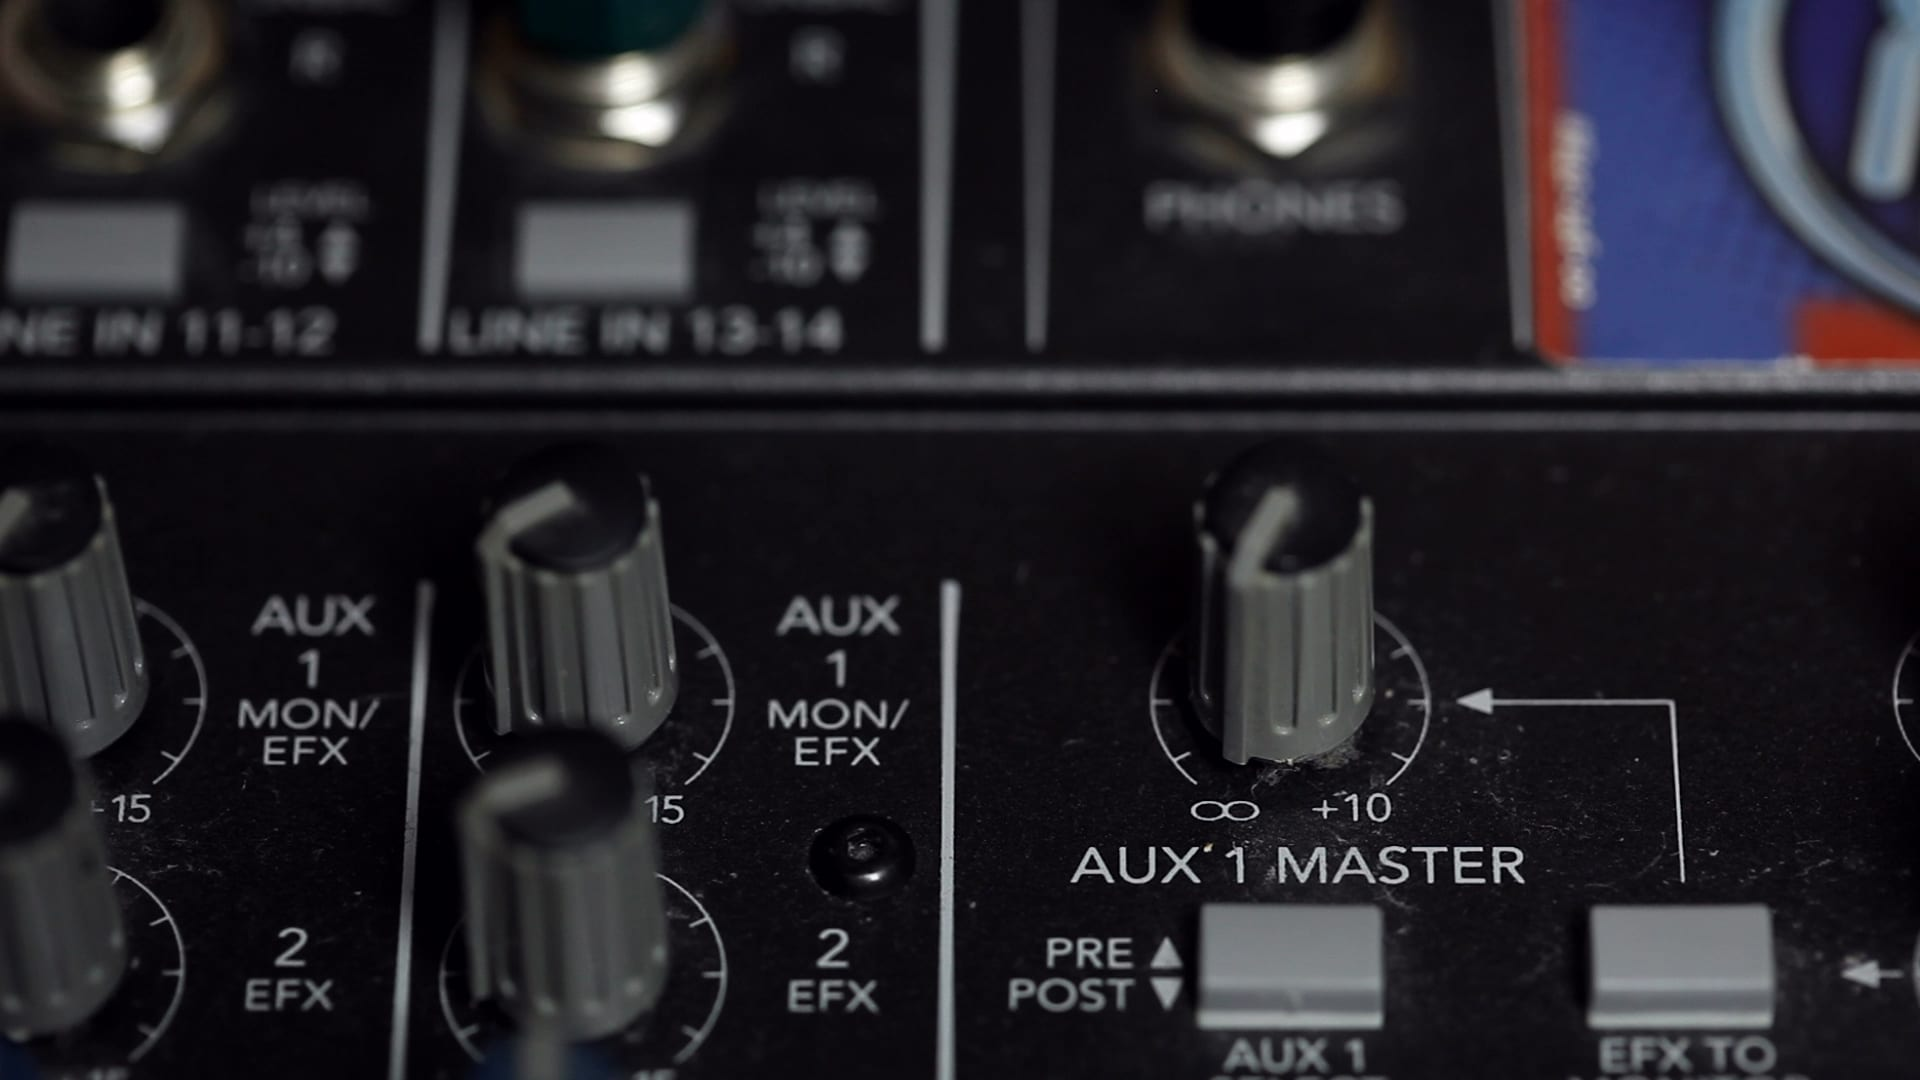 connect-h4n-to-mixer-adjust-aux-master